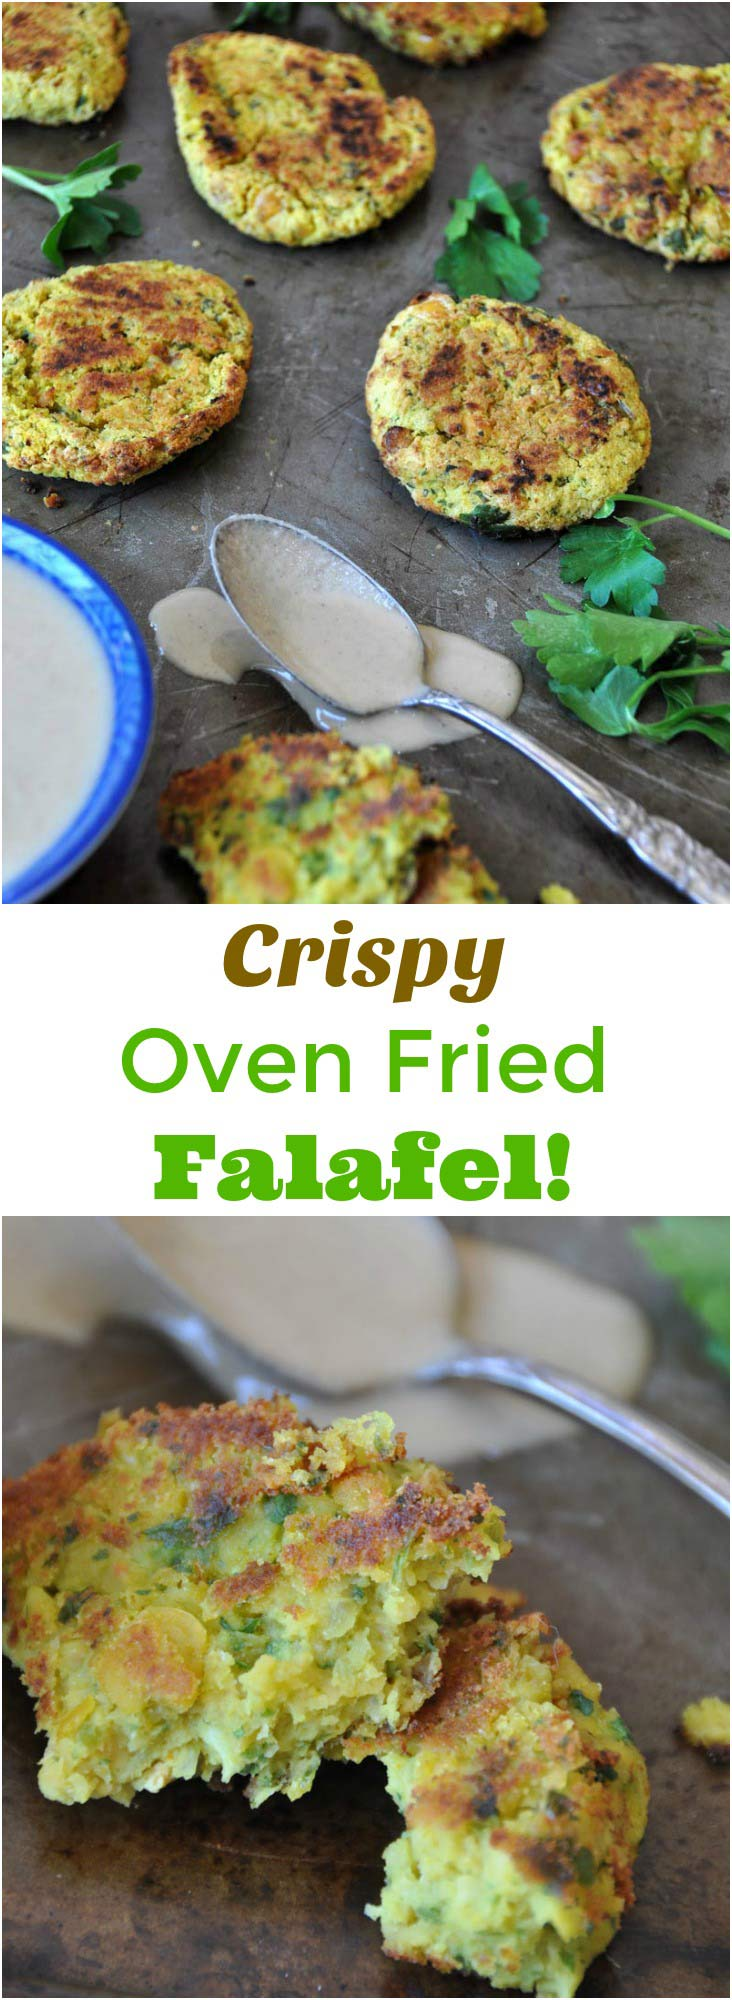 Crispy oven fried falafel for dinner! This is an easy and healthier version of deep fried falafel.